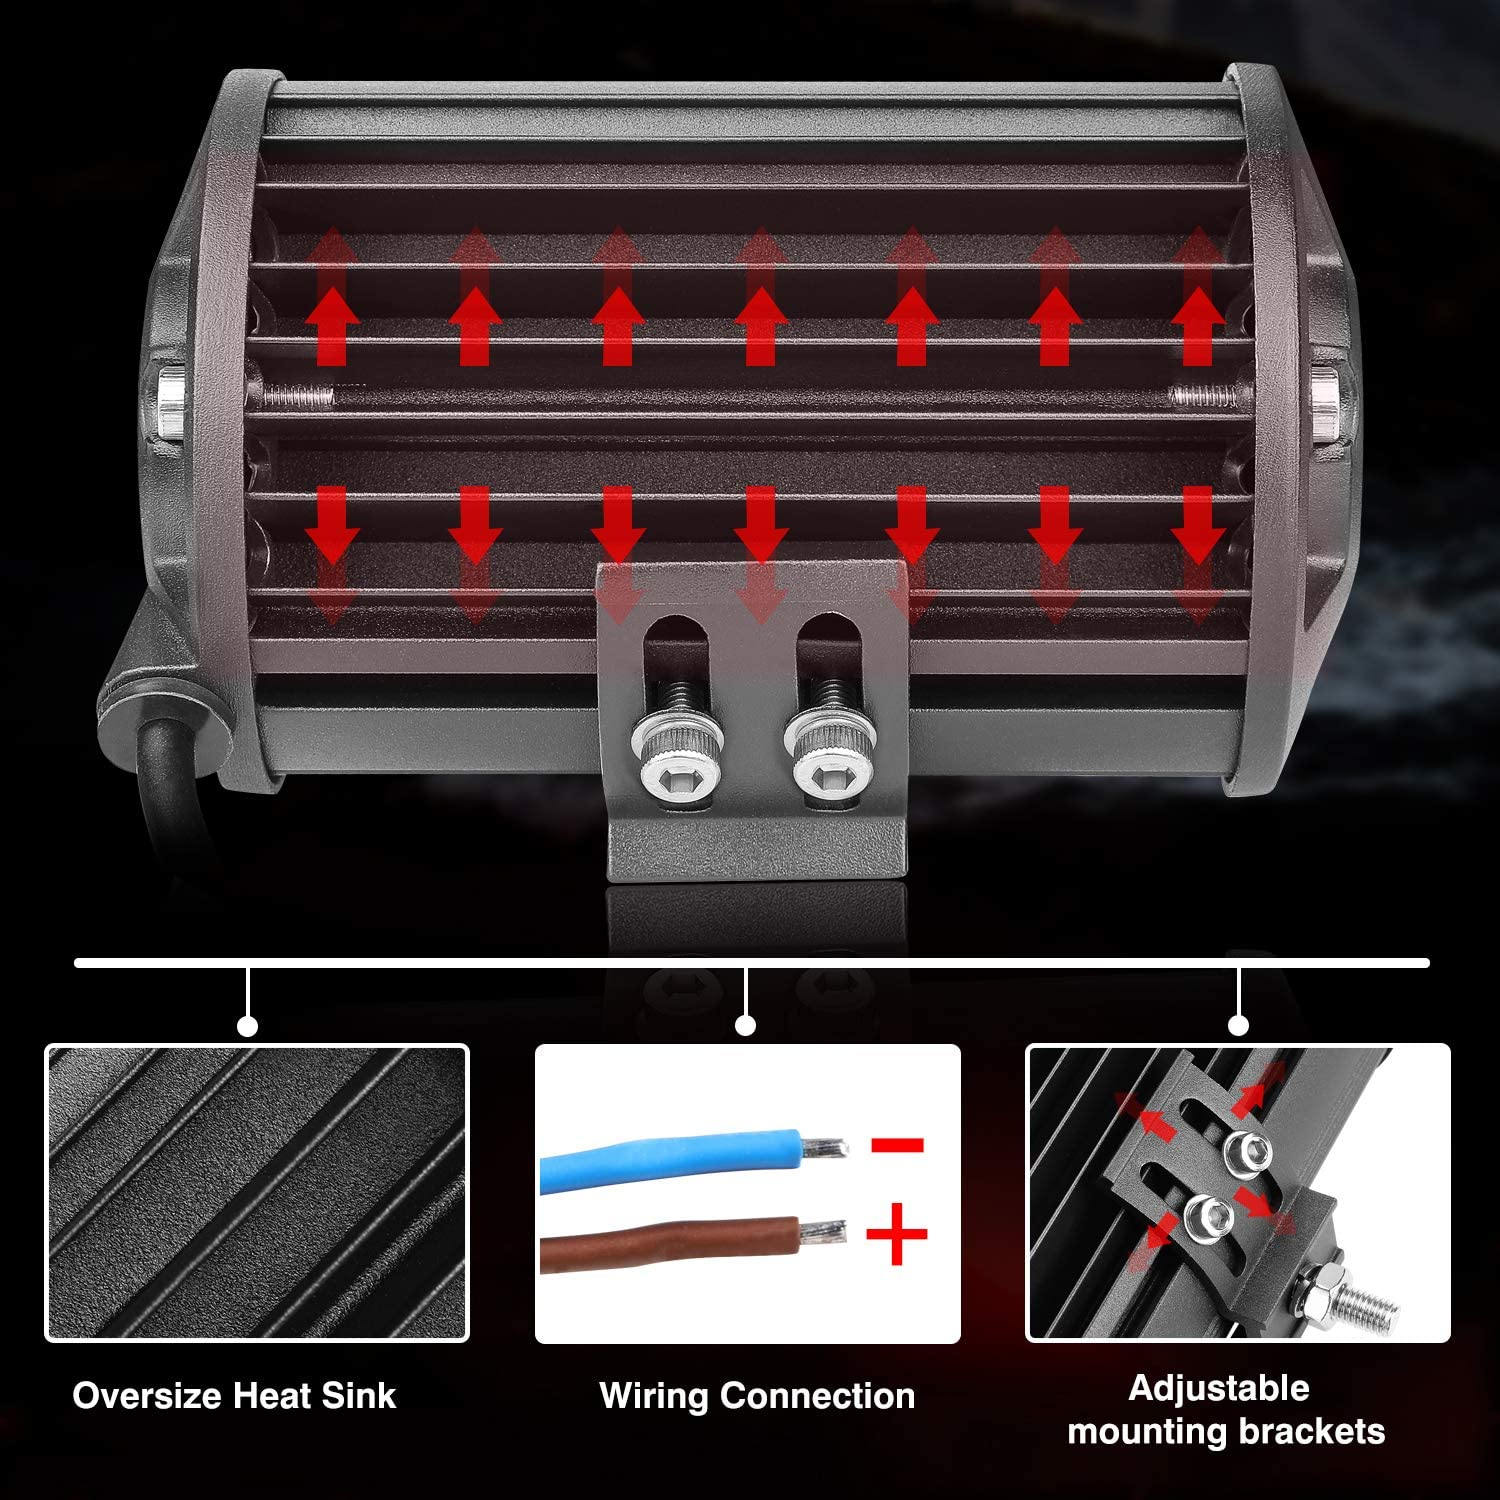 Amber Light Bar Teochew-LED 2Pcs 140W 5 Inch Amber Fog Lights Off Road Driving Lights Yellow Work Lights for Truck Jeep Tractor Car SUV ATV RZR Boat